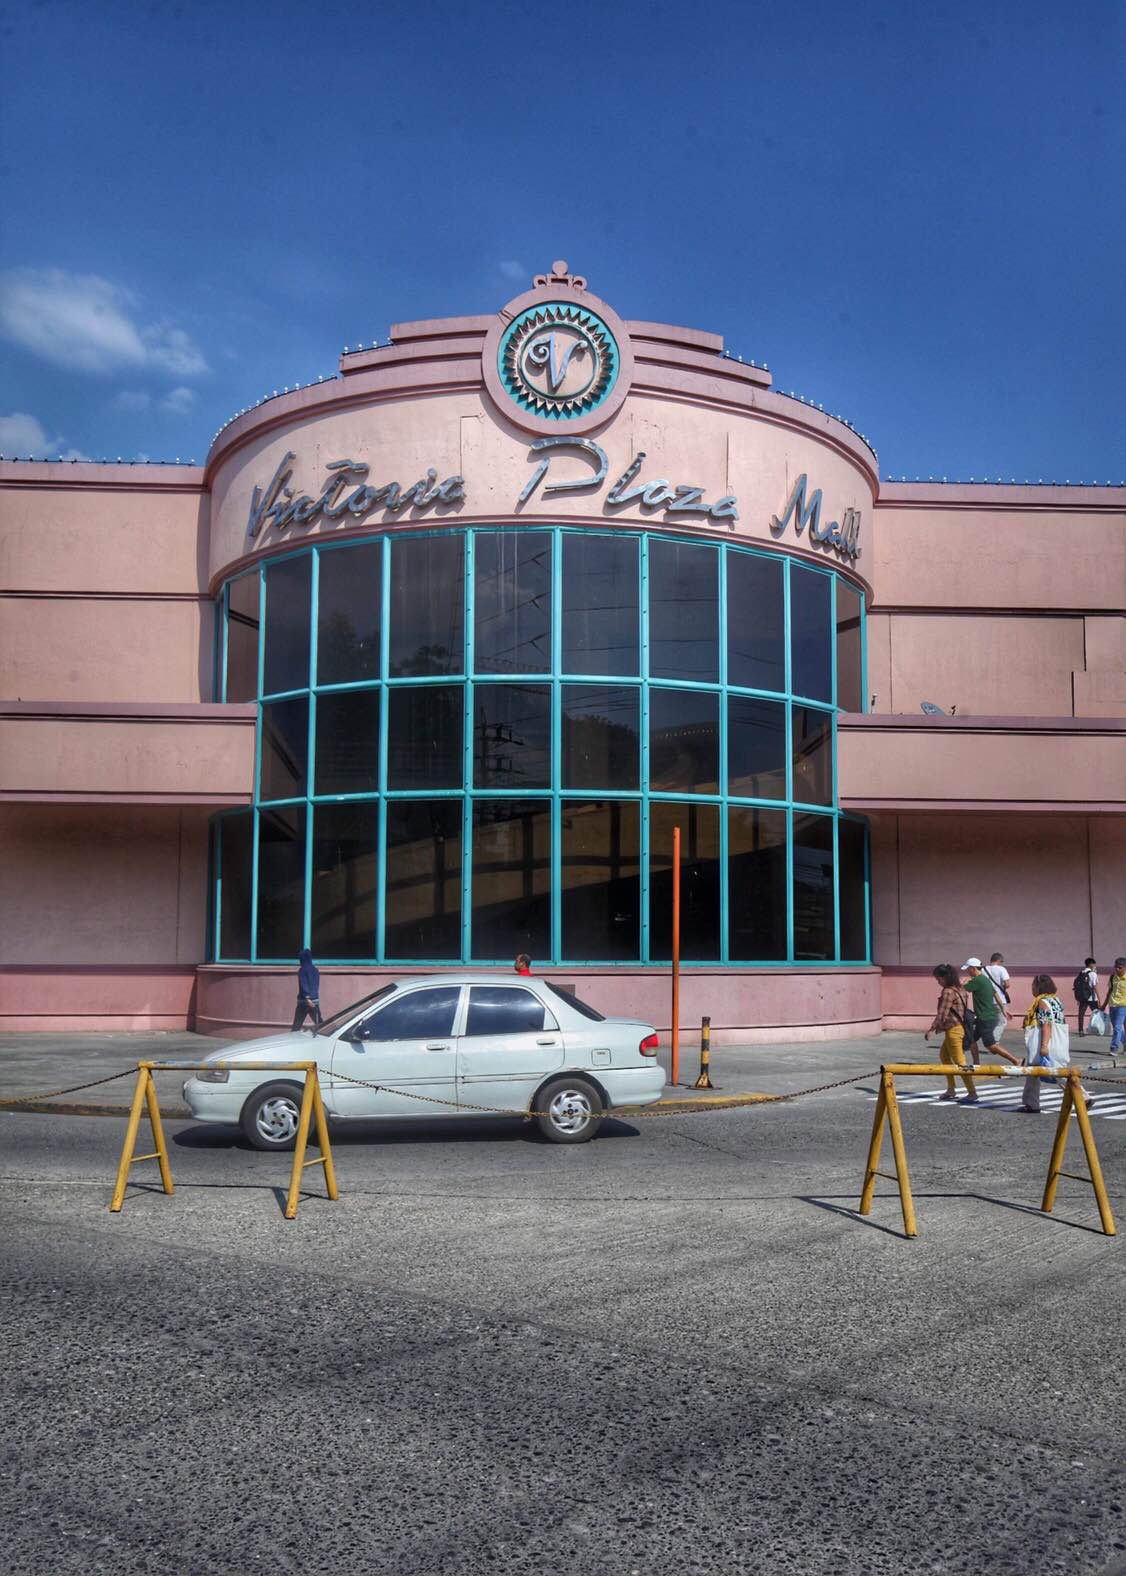 NCCC BUYS V  PLAZA Acquisition cost to be disclosed on March